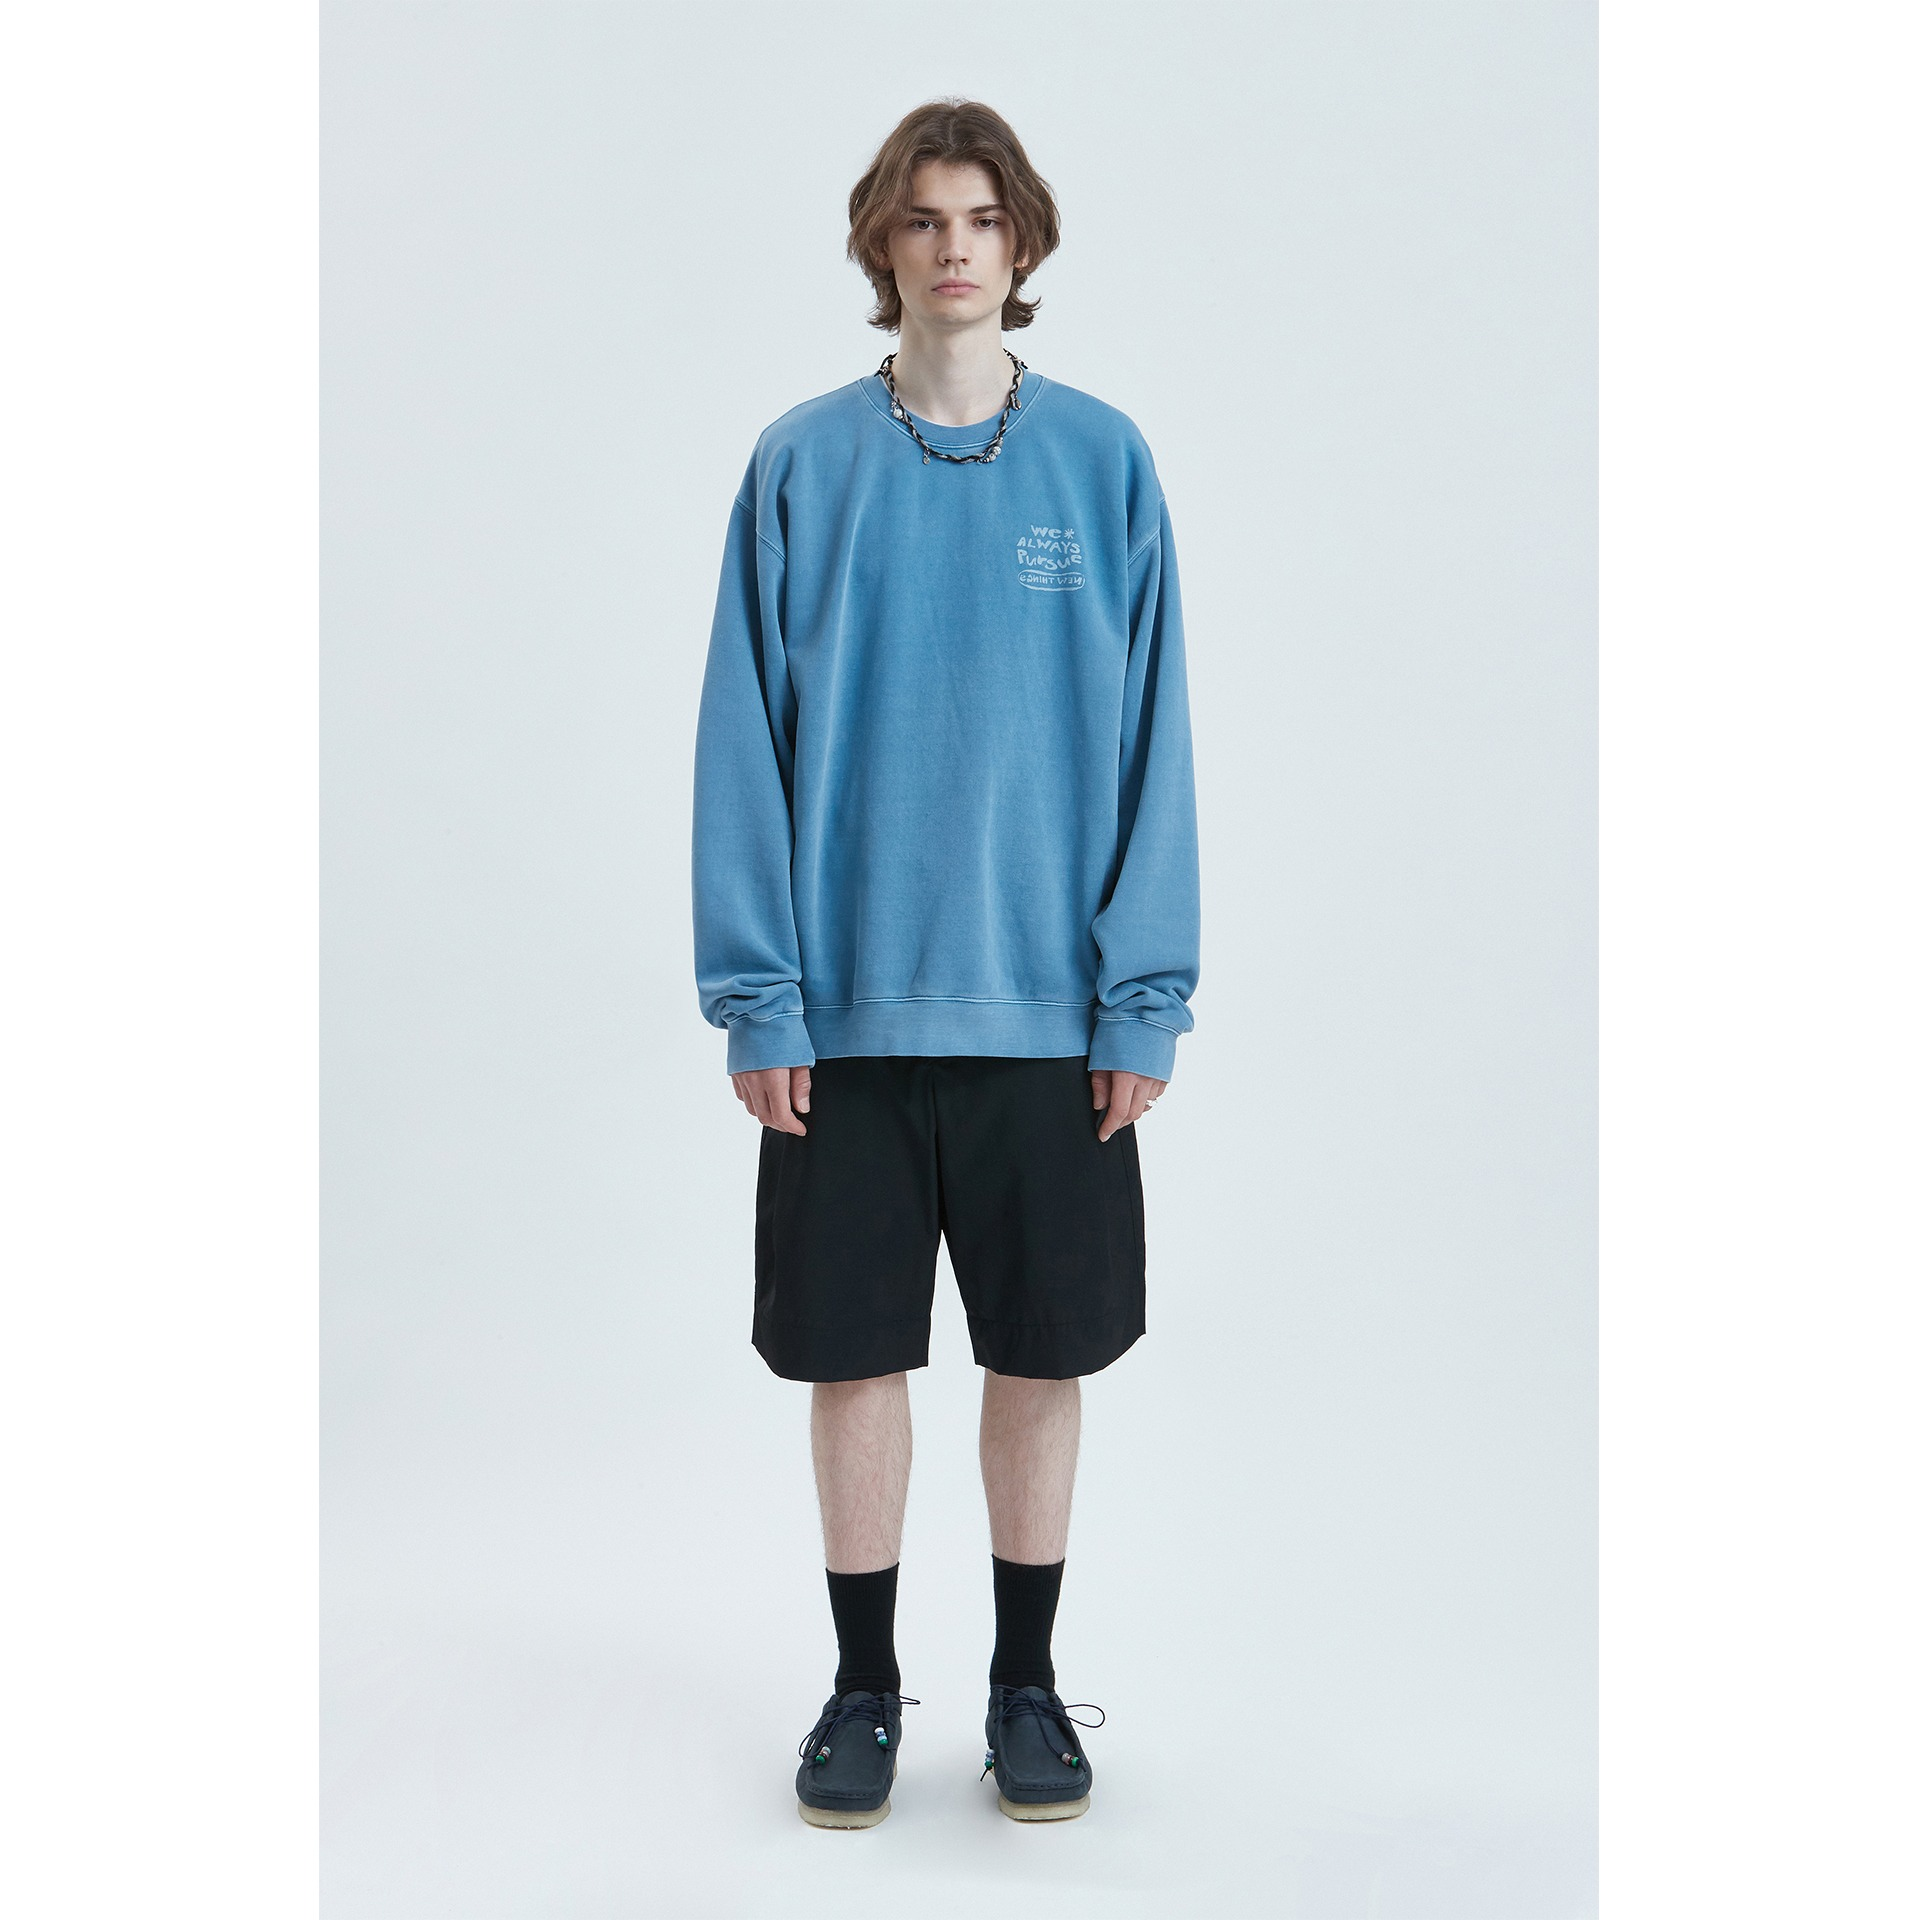 LIFUL P-DYED HANDWRITTEN SWEATSHIRT blue